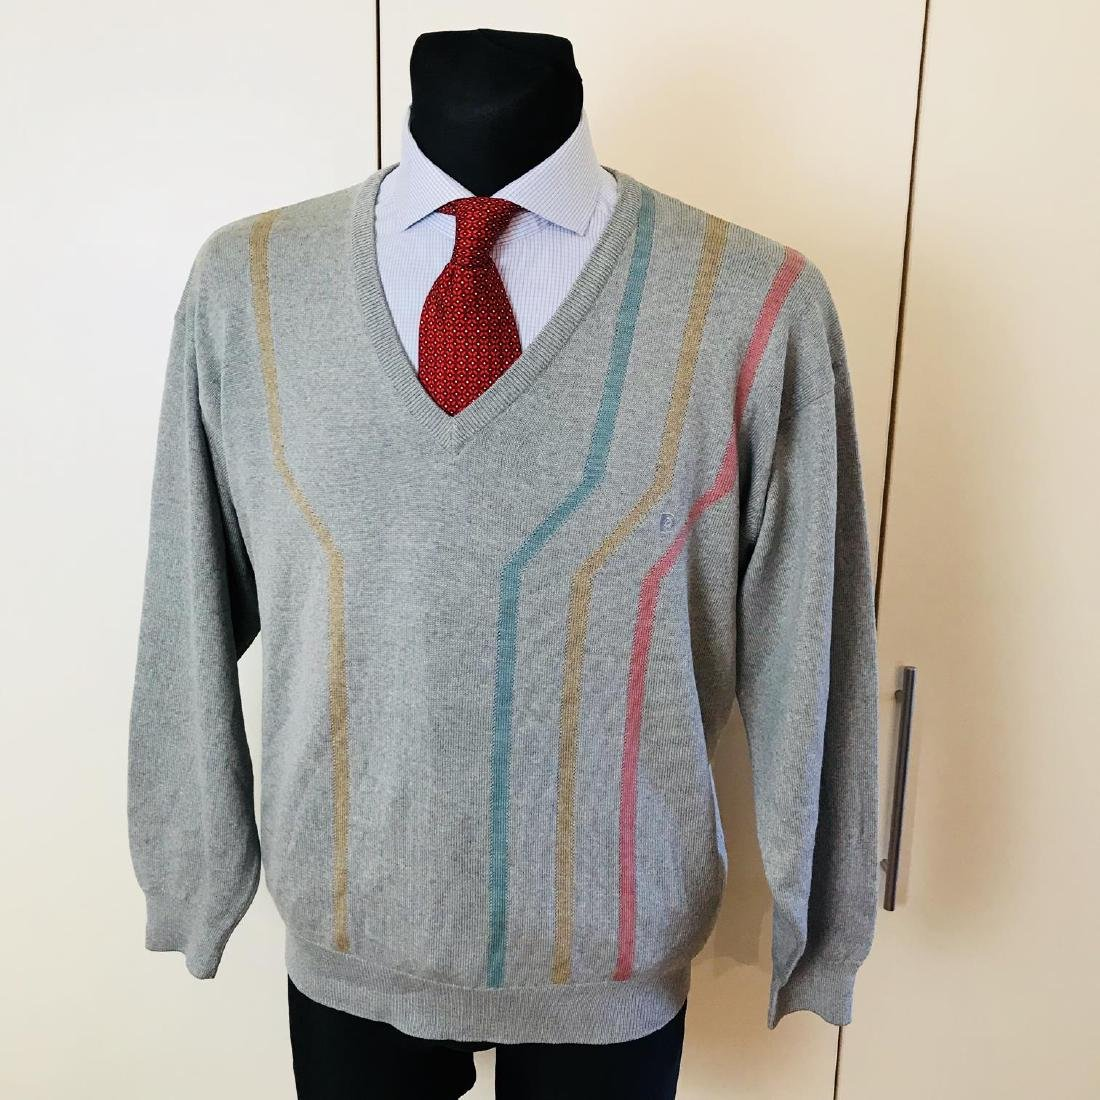 Vintage Men's Pierre Cardin Wool Sweater Size L